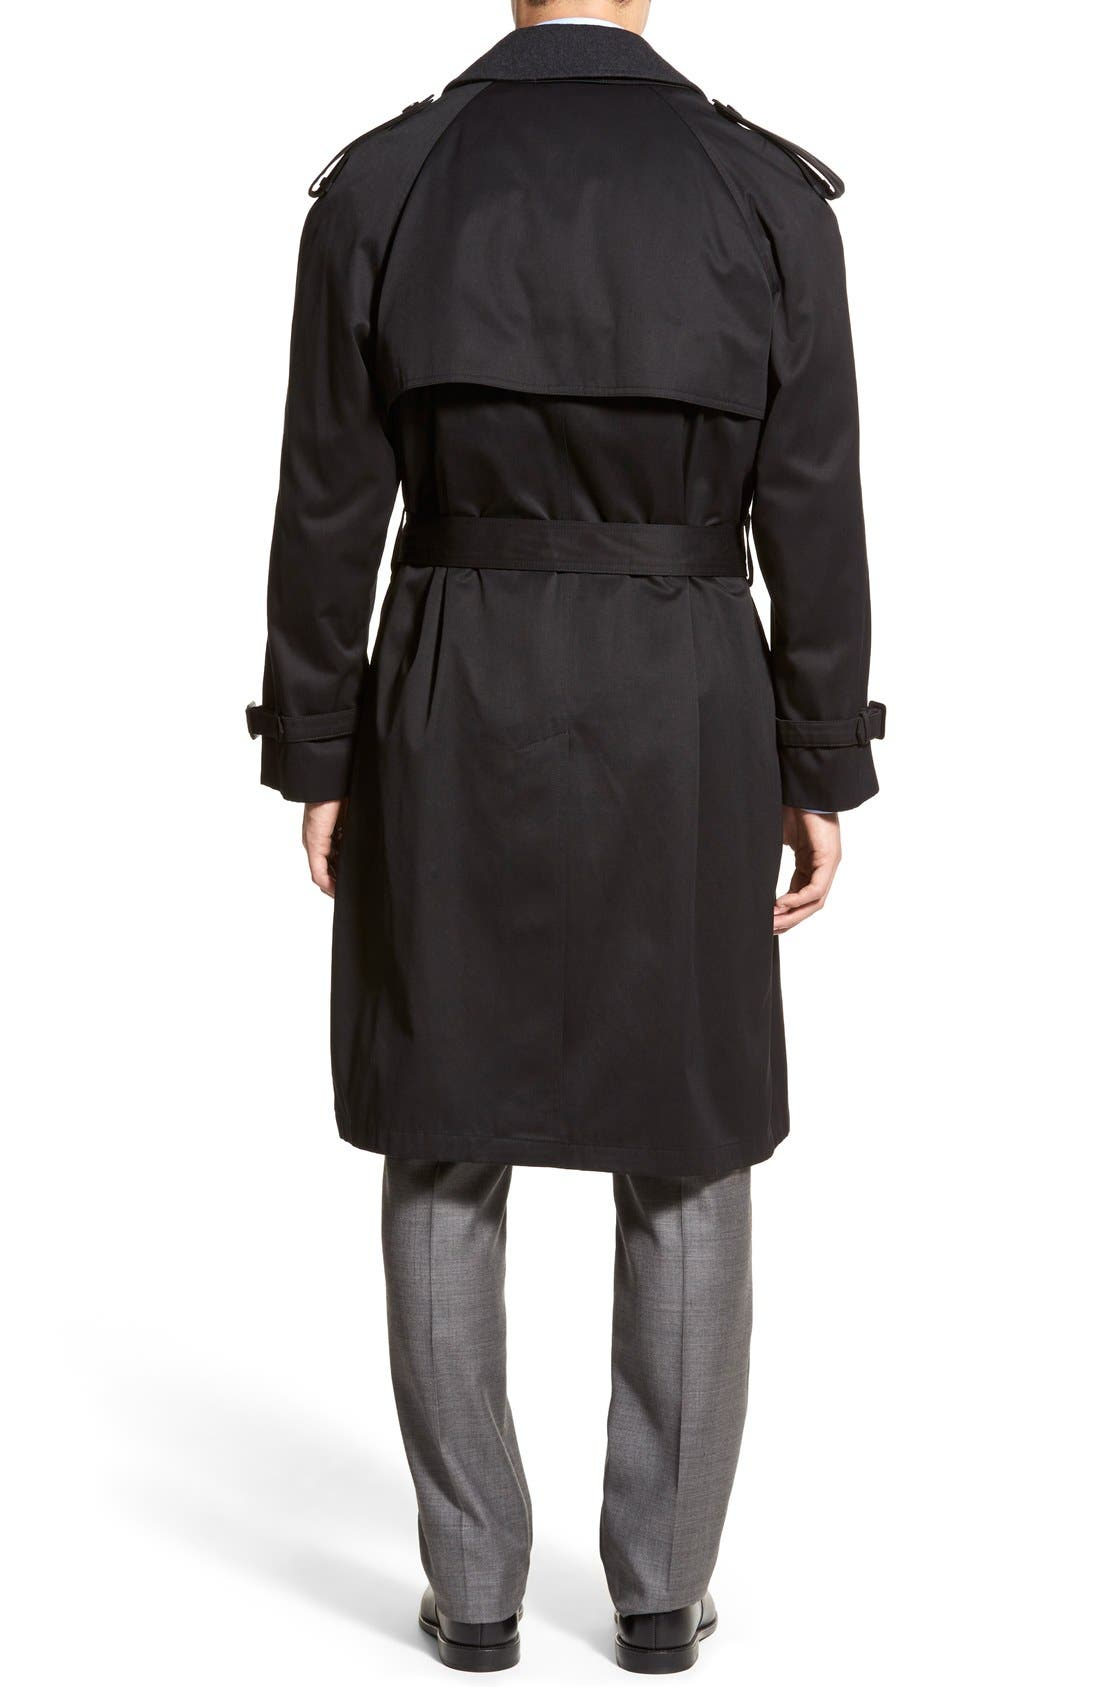 Barrington Classic Fit Cotton Blend Trench Coat,                             Alternate thumbnail 2, color,                             Black